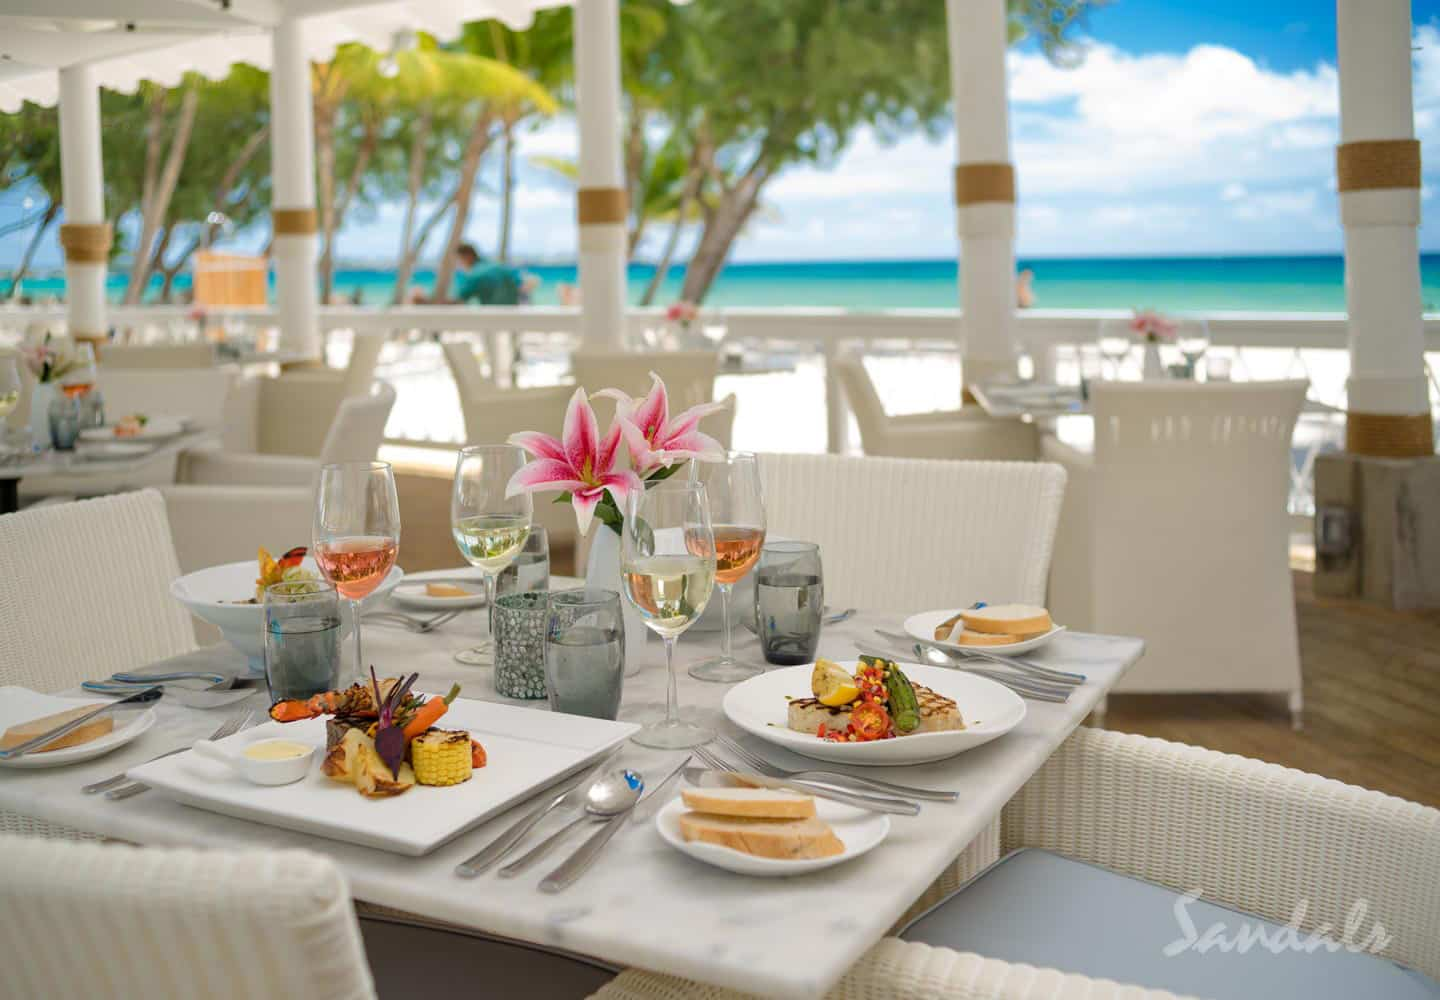 luxury breakfast dining area at the adult only Sandals Barbados resort, adult only vacations can be booked with Southern Travel Agency Augusta, GA